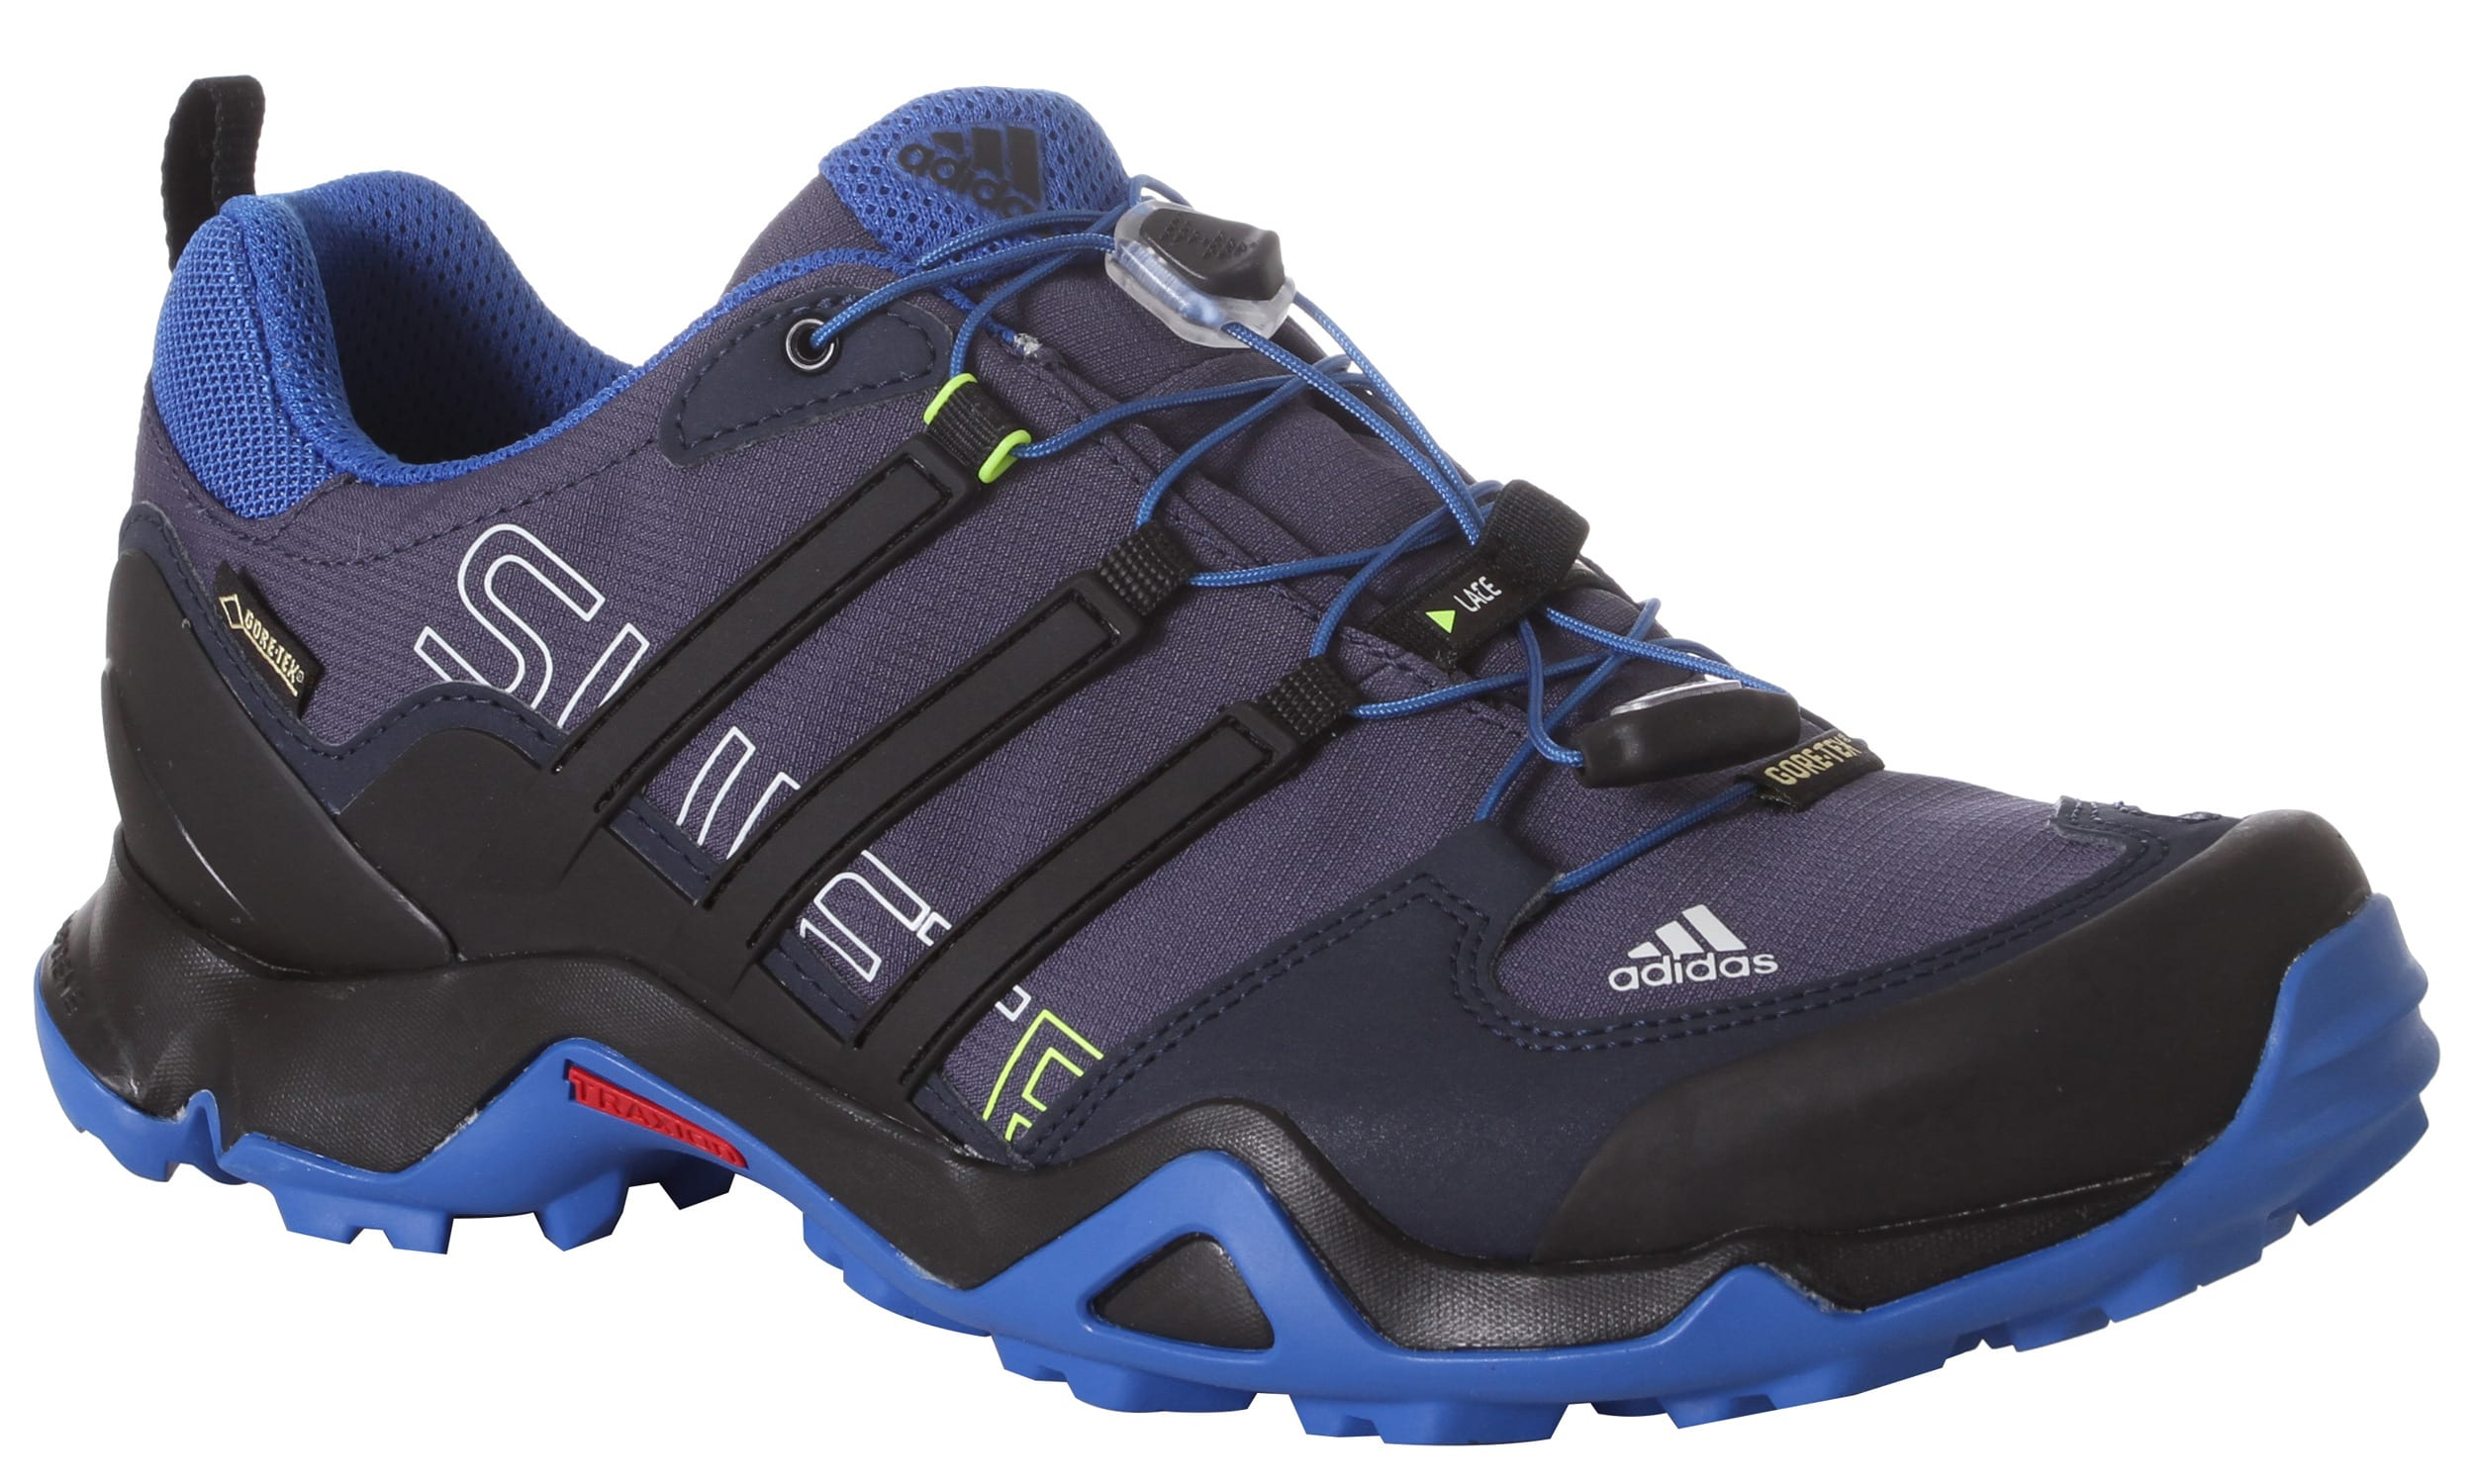 on sale adidas terrex swift r gtx hiking shoes up to 45 off. Black Bedroom Furniture Sets. Home Design Ideas